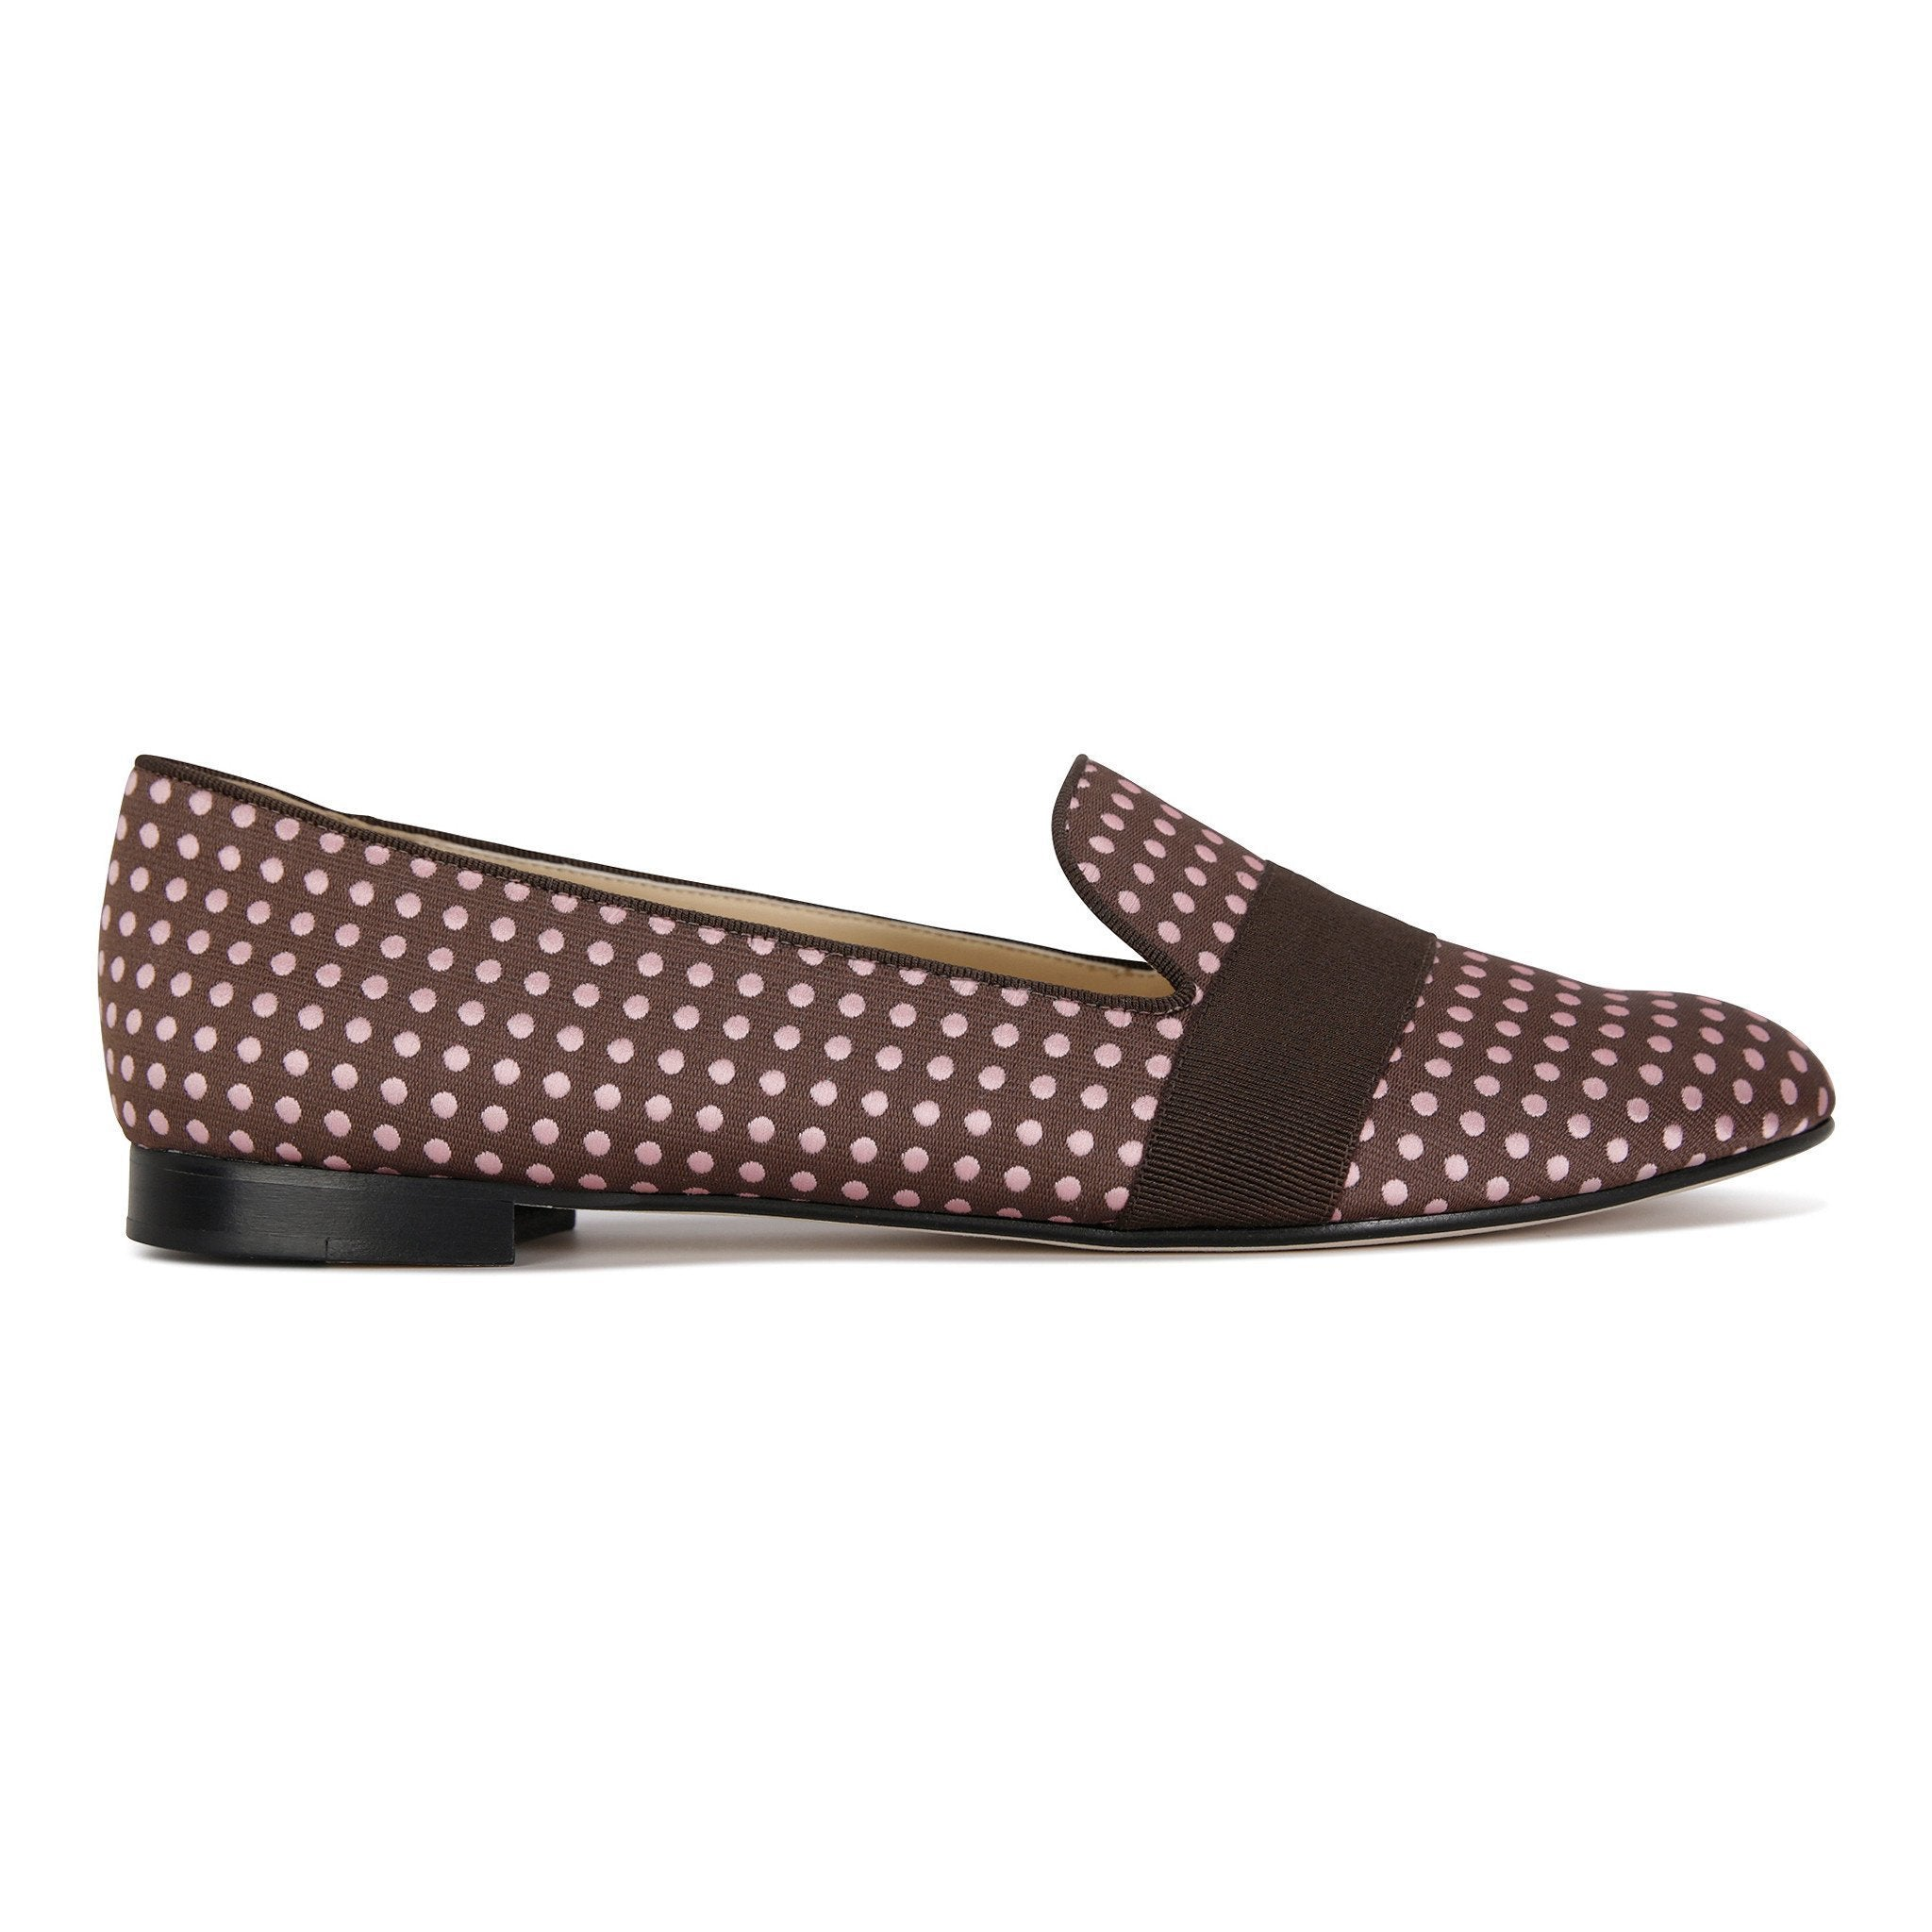 RAVENNA - Textile Pink and Brown Dots + Grosgrain Moro, VIAJIYU - Women's Hand Made Sustainable Luxury Shoes. Made in Italy. Made to Order.